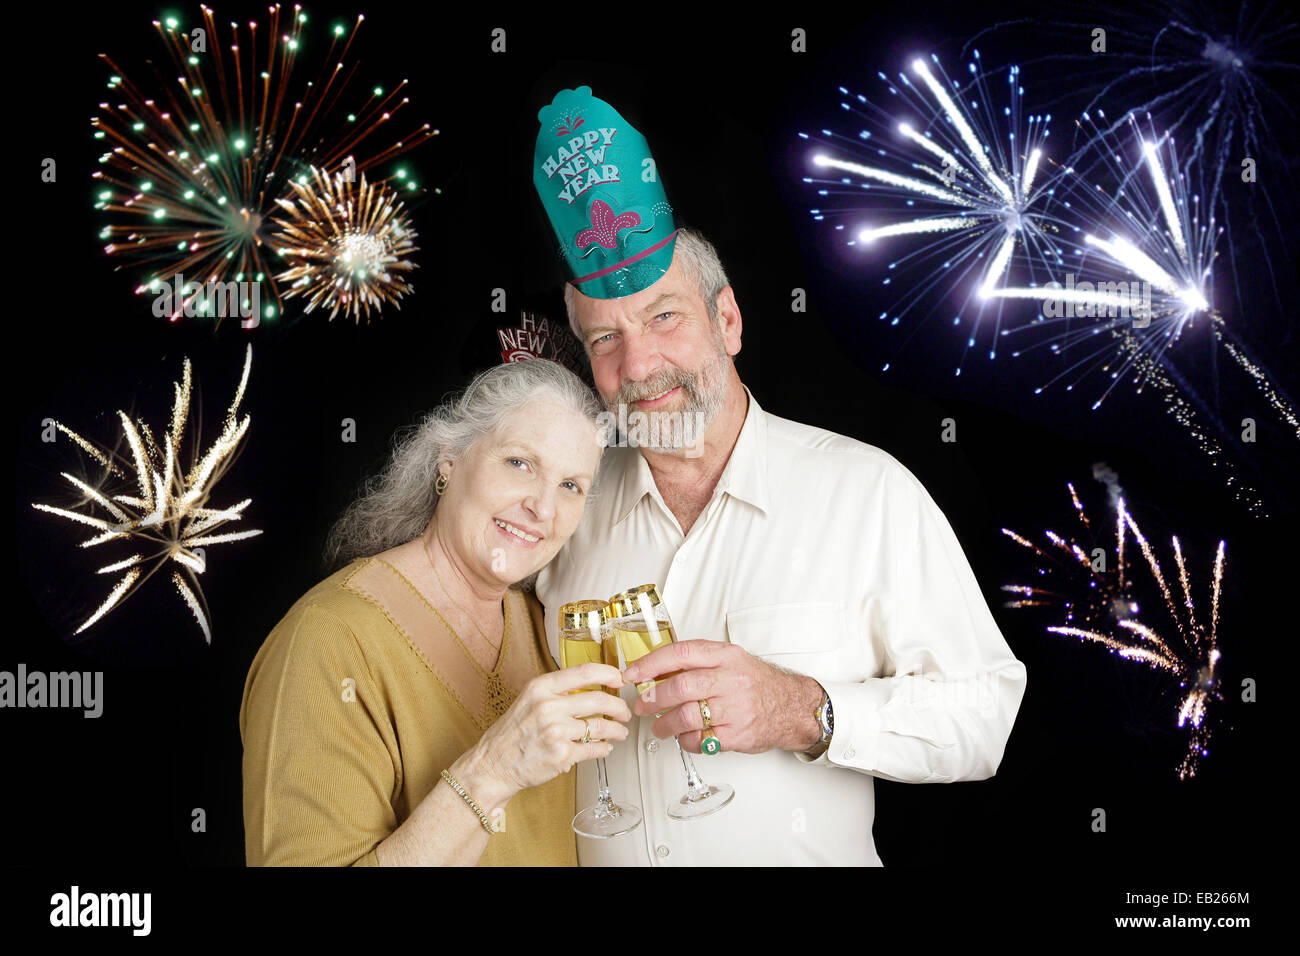 beautiful senior couple celebrating a happy new year with a champagne toast while fireworks go off in the background